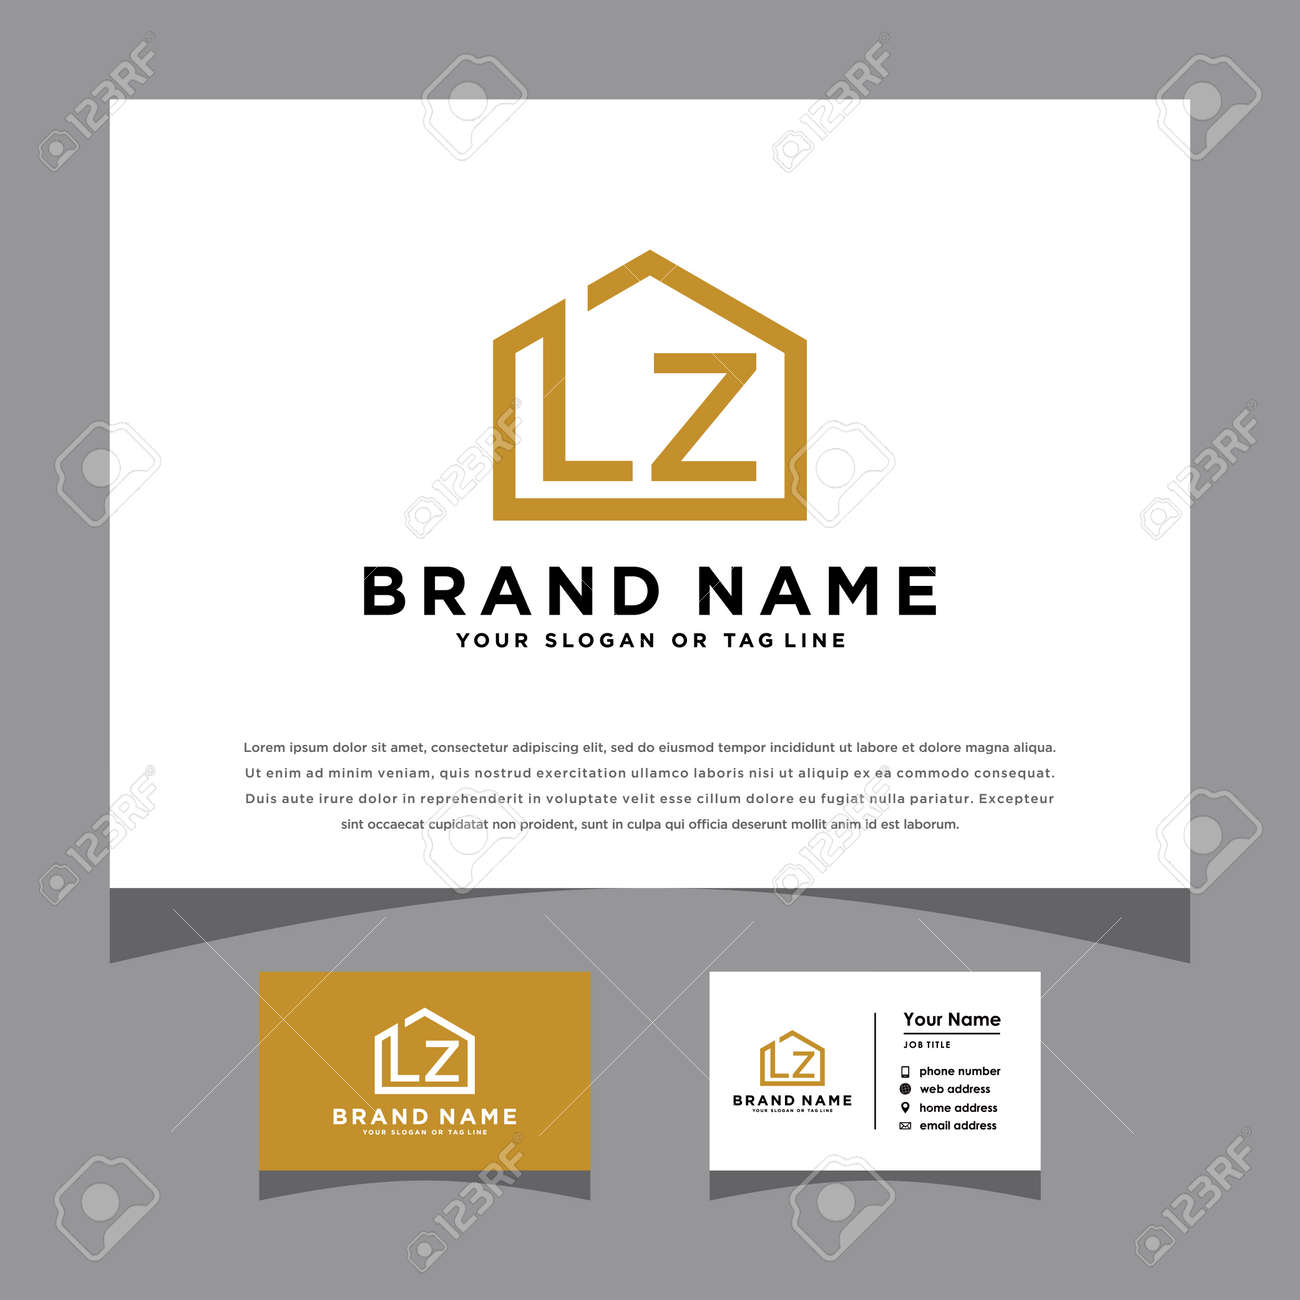 initials LZ logo with a business card vector template - 160665356